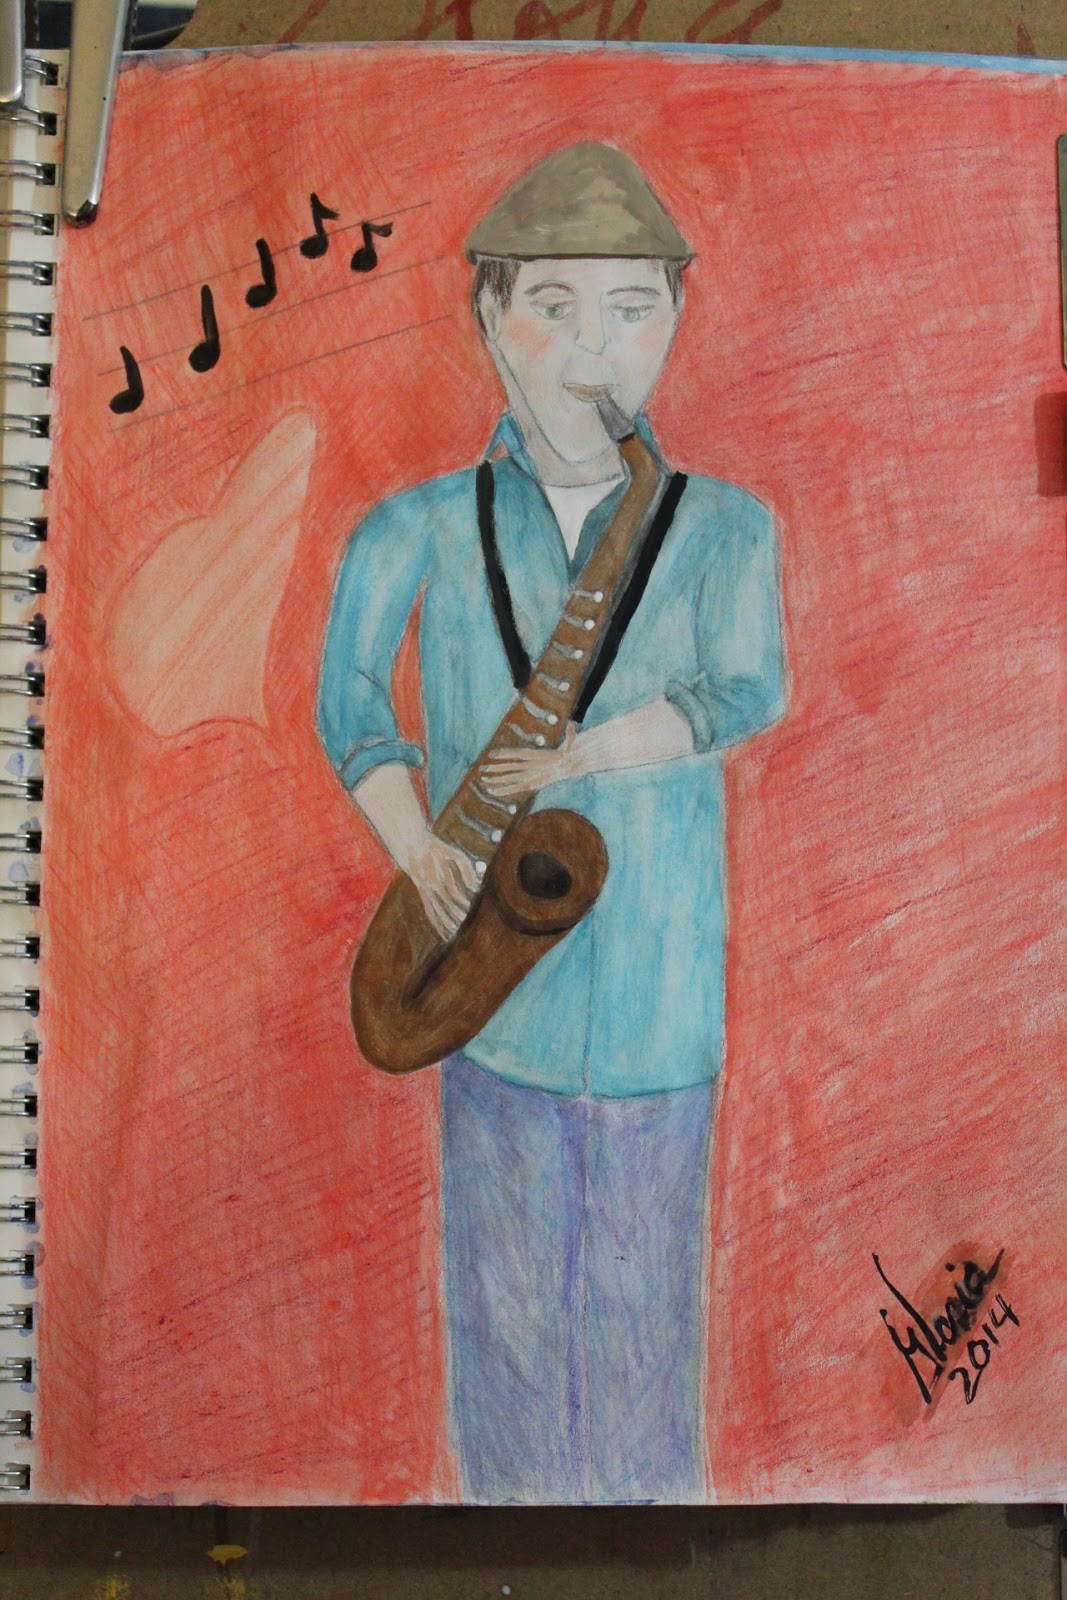 """Saxaphone sketch 3"" by Gloria Poole of Missouri; 17-March-2014"